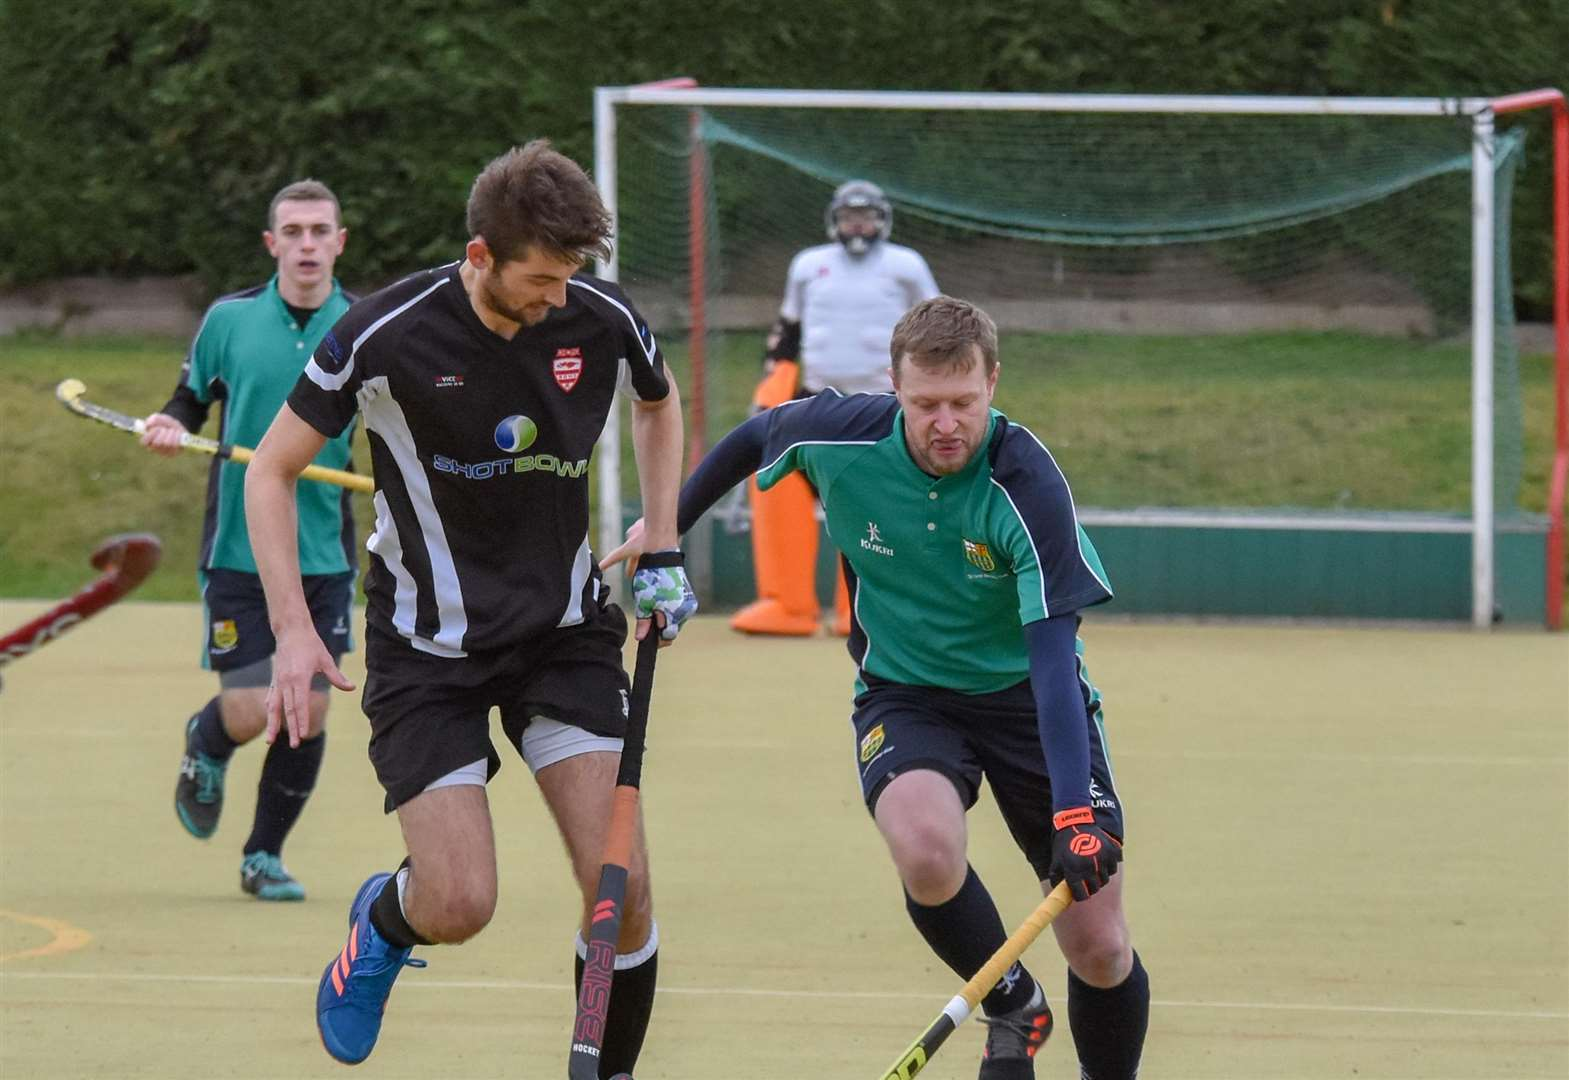 HOCKEY: Andrew's amazing haul after treble hat-trick for Dragons